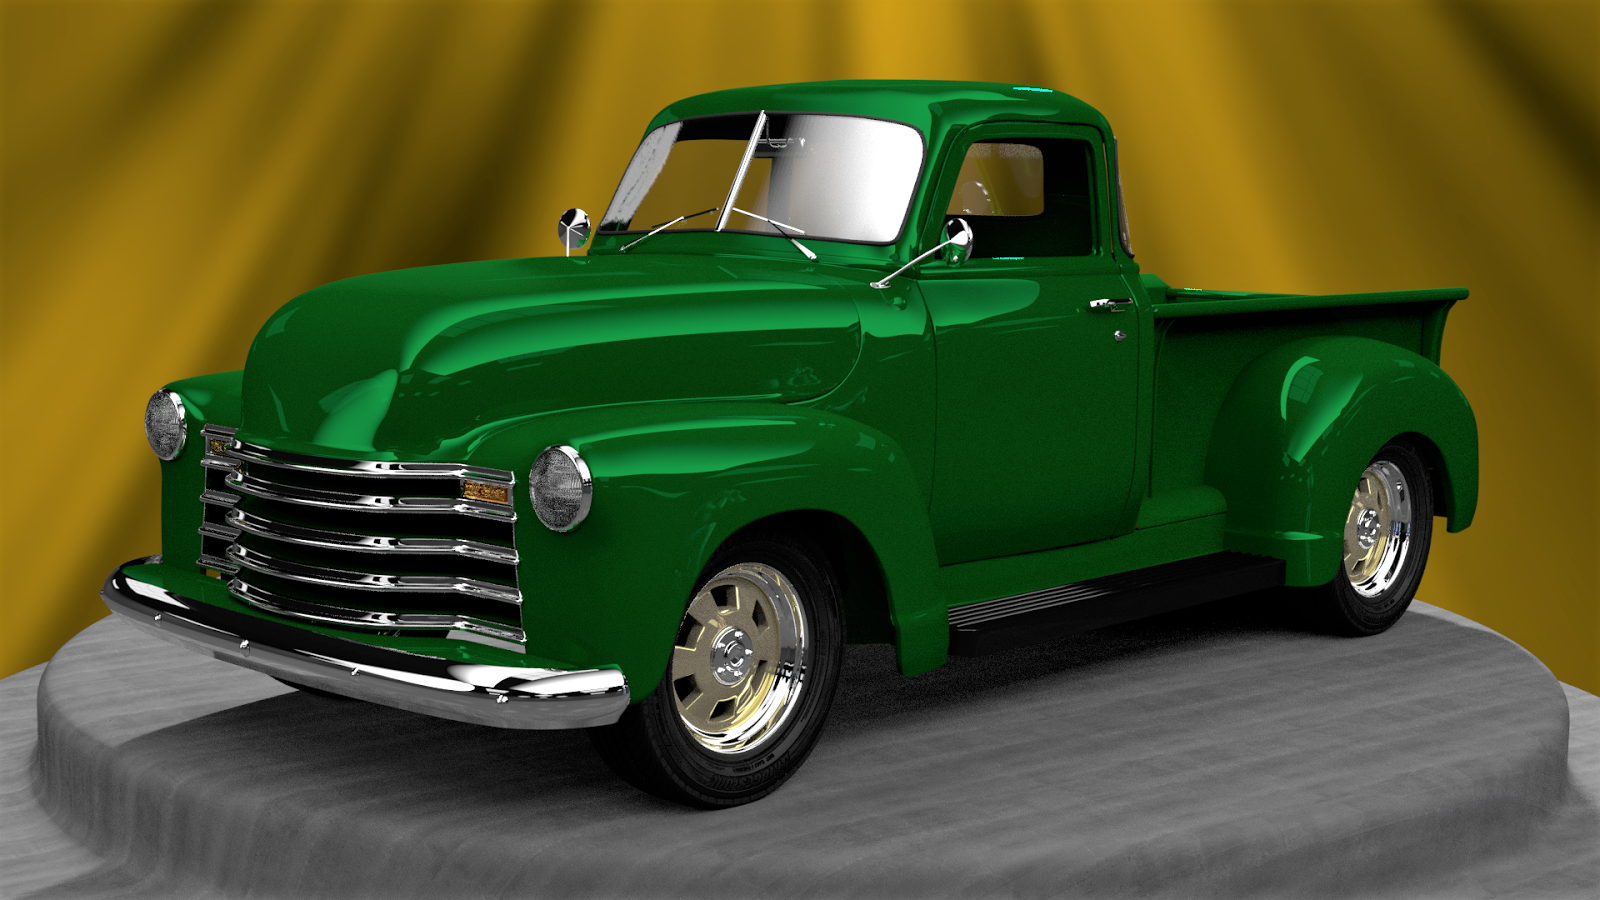 The Tinkers Workshop My 1951 Chevy Blender 3d Pickup Truck Is Chevrolet Custom Hot Rod I Had To Do Research Online Find 90 Plus Photos Needed For Modeling Of This Included Everything From Tires Windshield